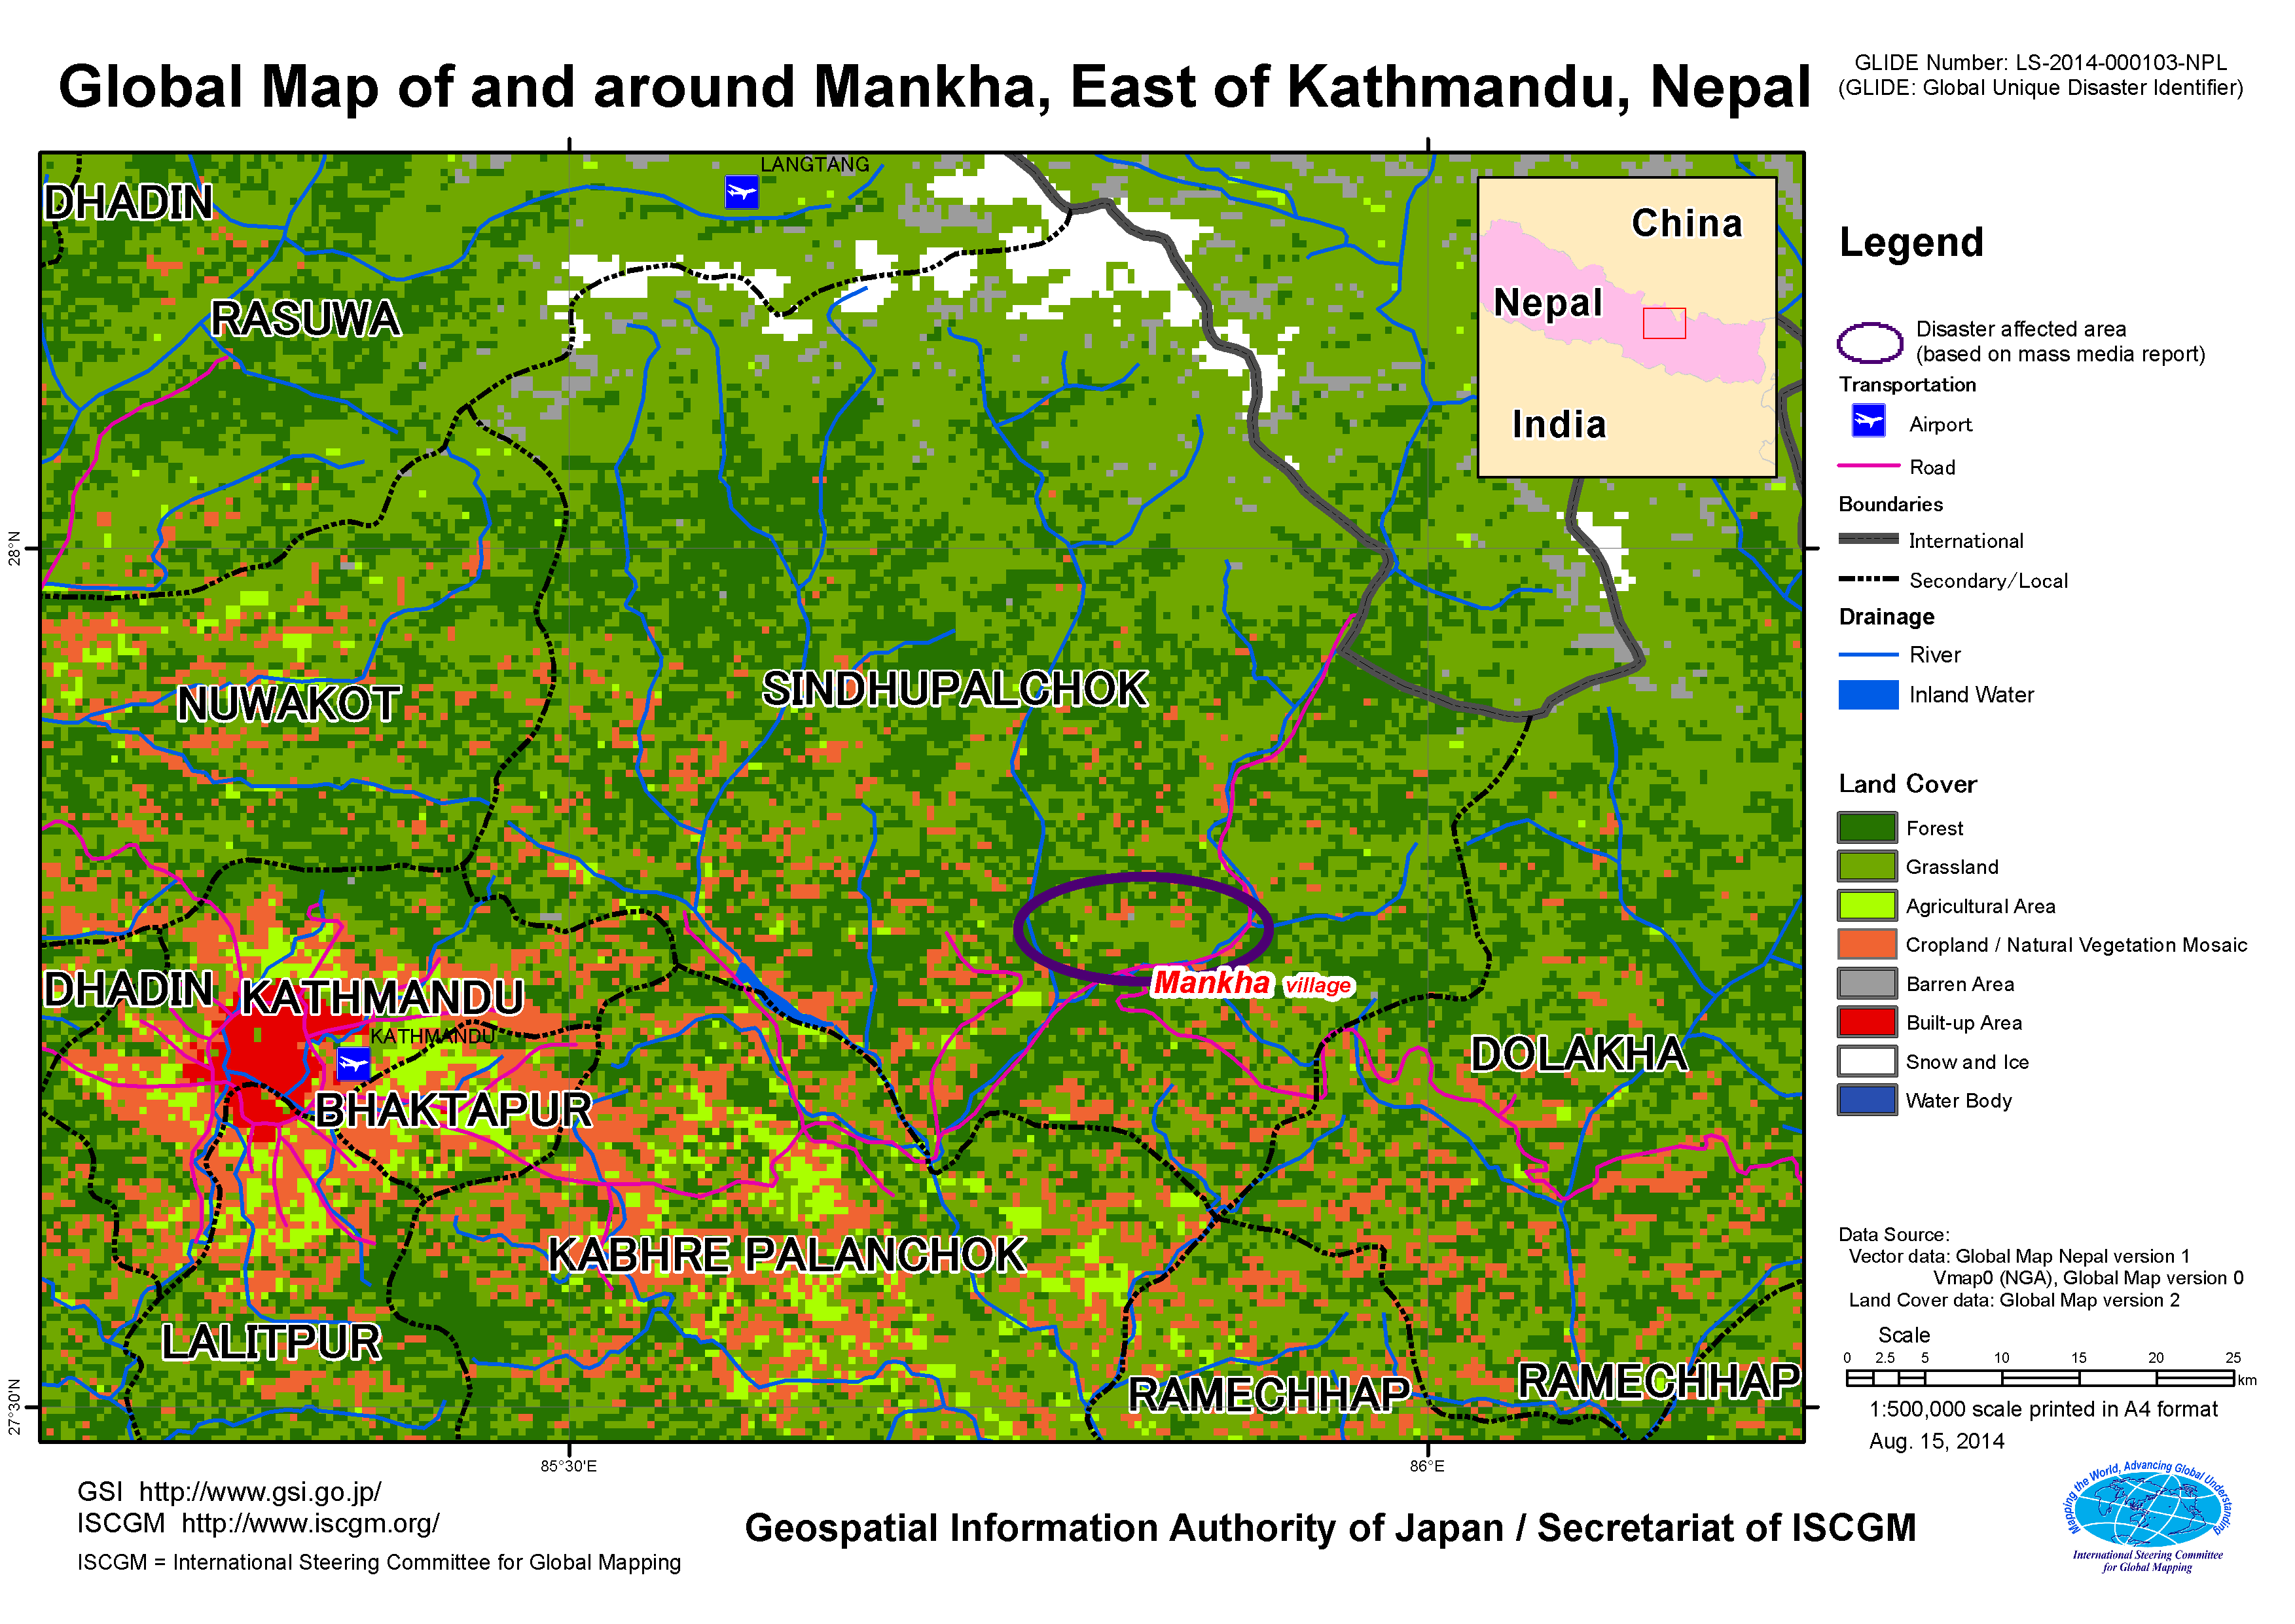 Kathmandu On World Map.Landslide Disaster Of Eastern Nepal Aug 2014 Gsi Home Page